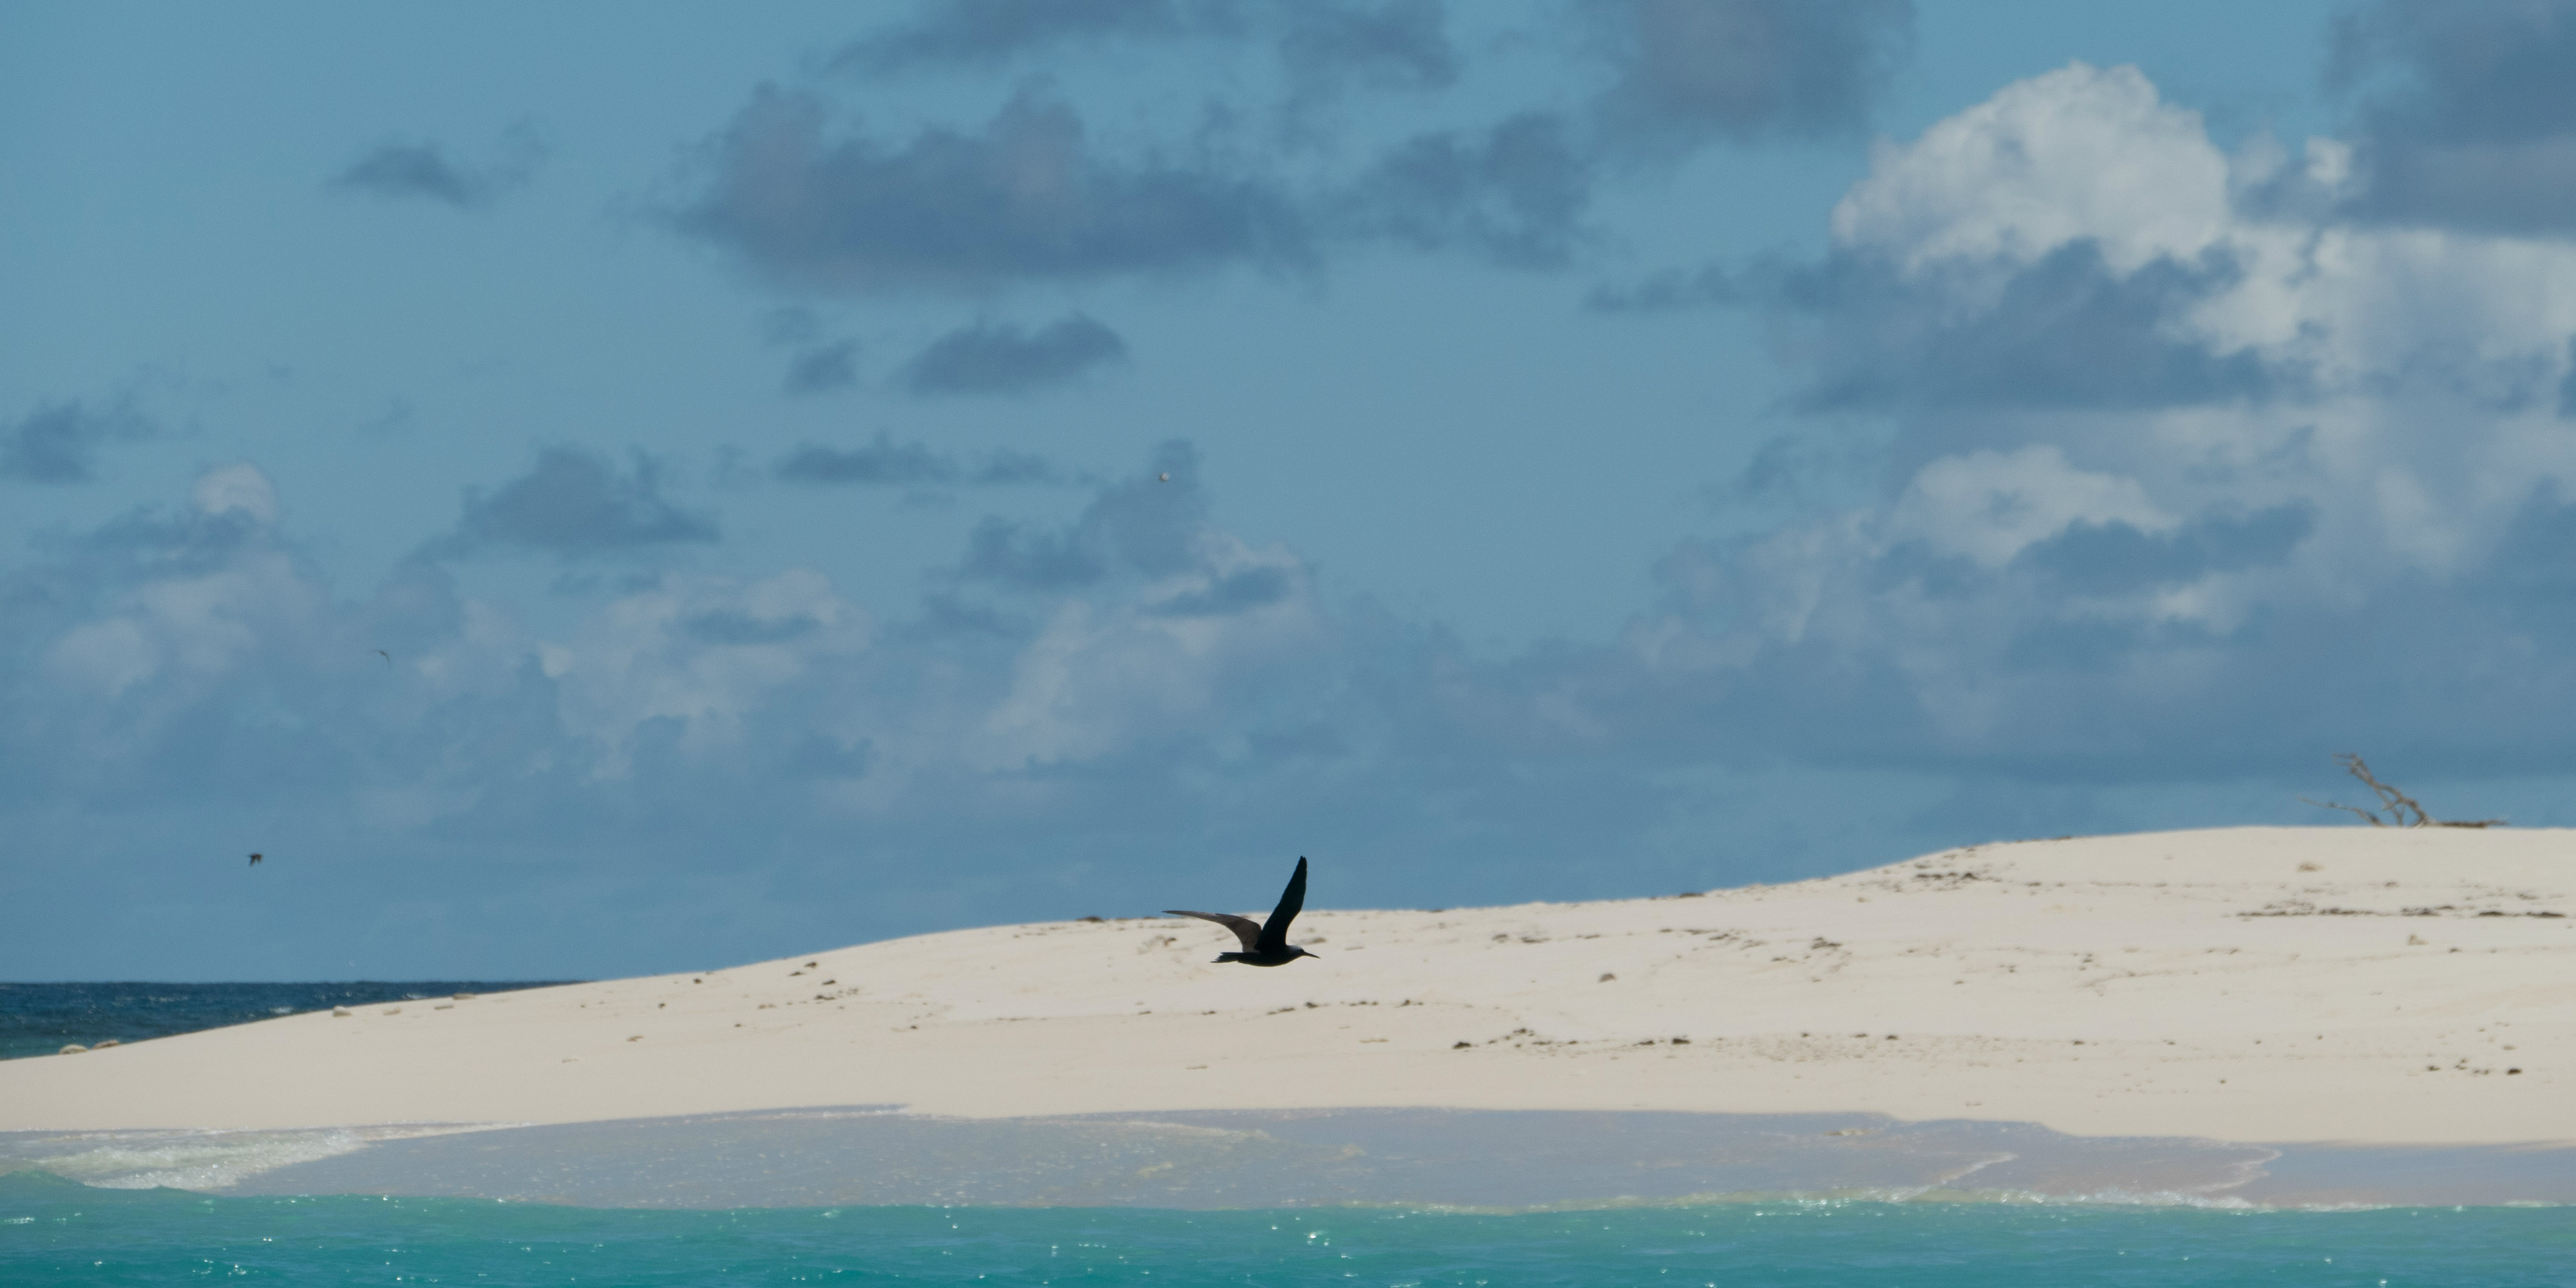 A bird glides gracefully on Bird Island, in the Seychelles archipelago home to many conservation projects.